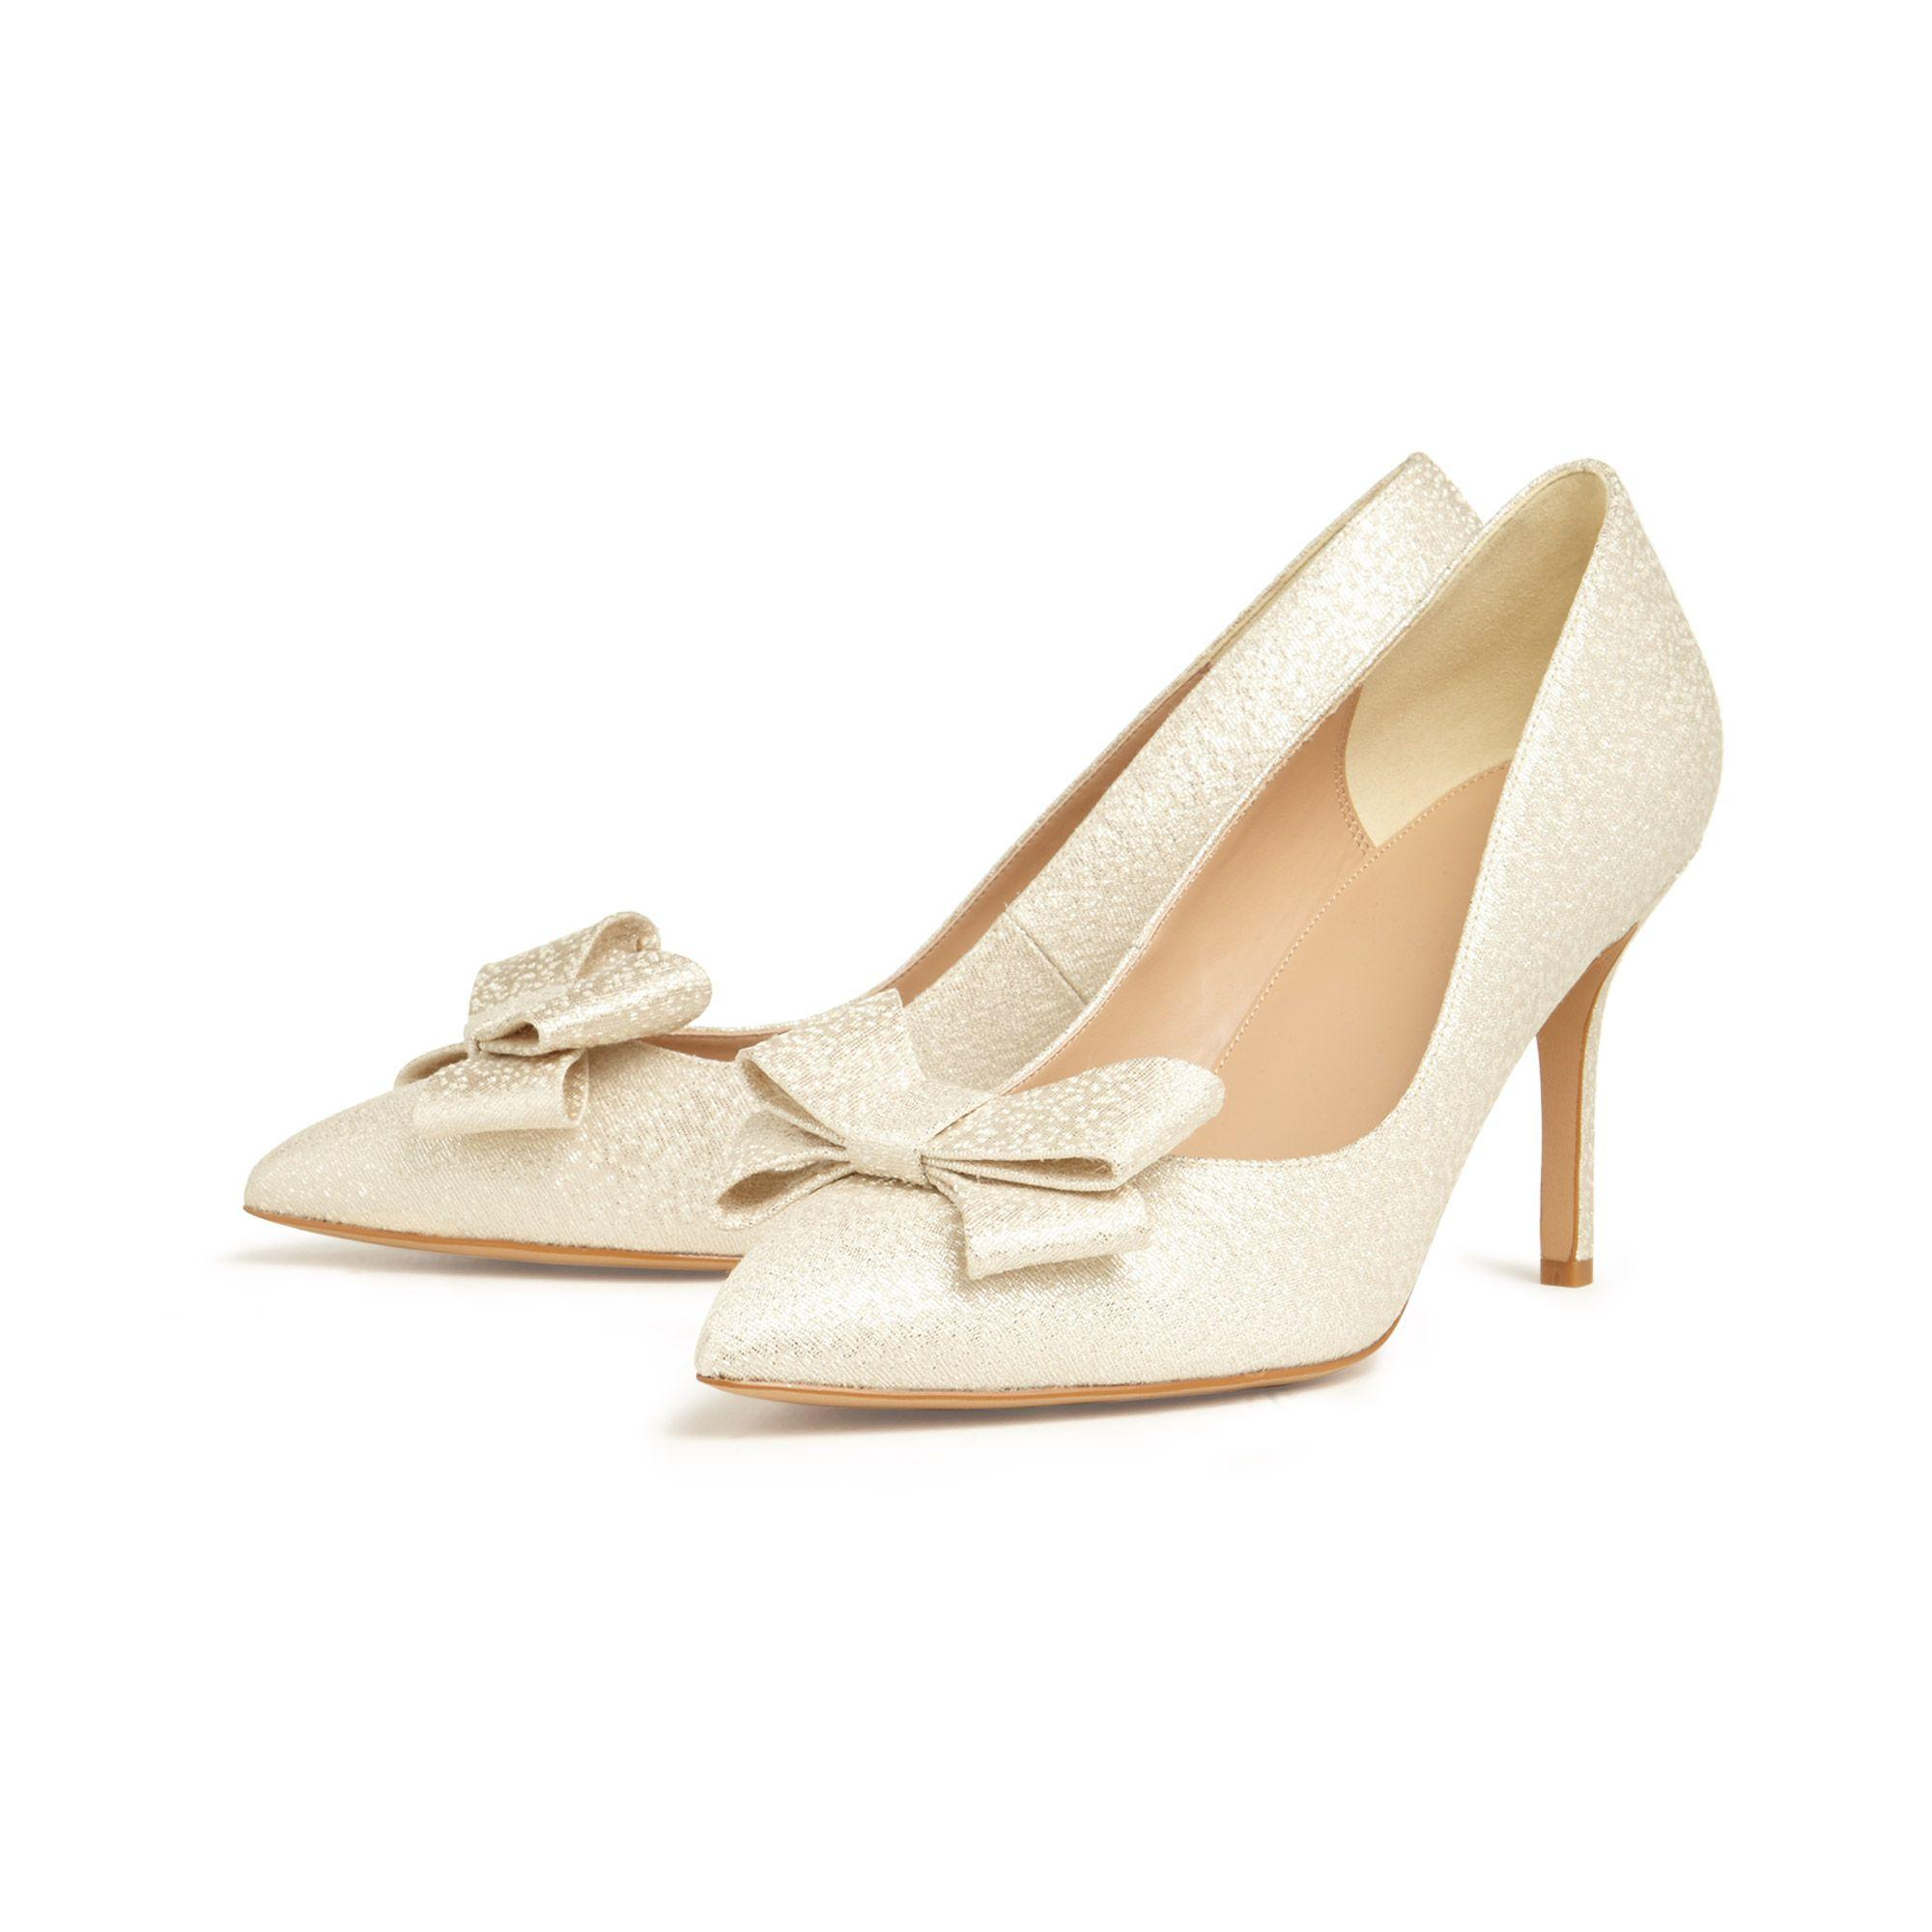 df1551325f1 Women's Natural Ariel Metallic Bow Pointed Court Shoes